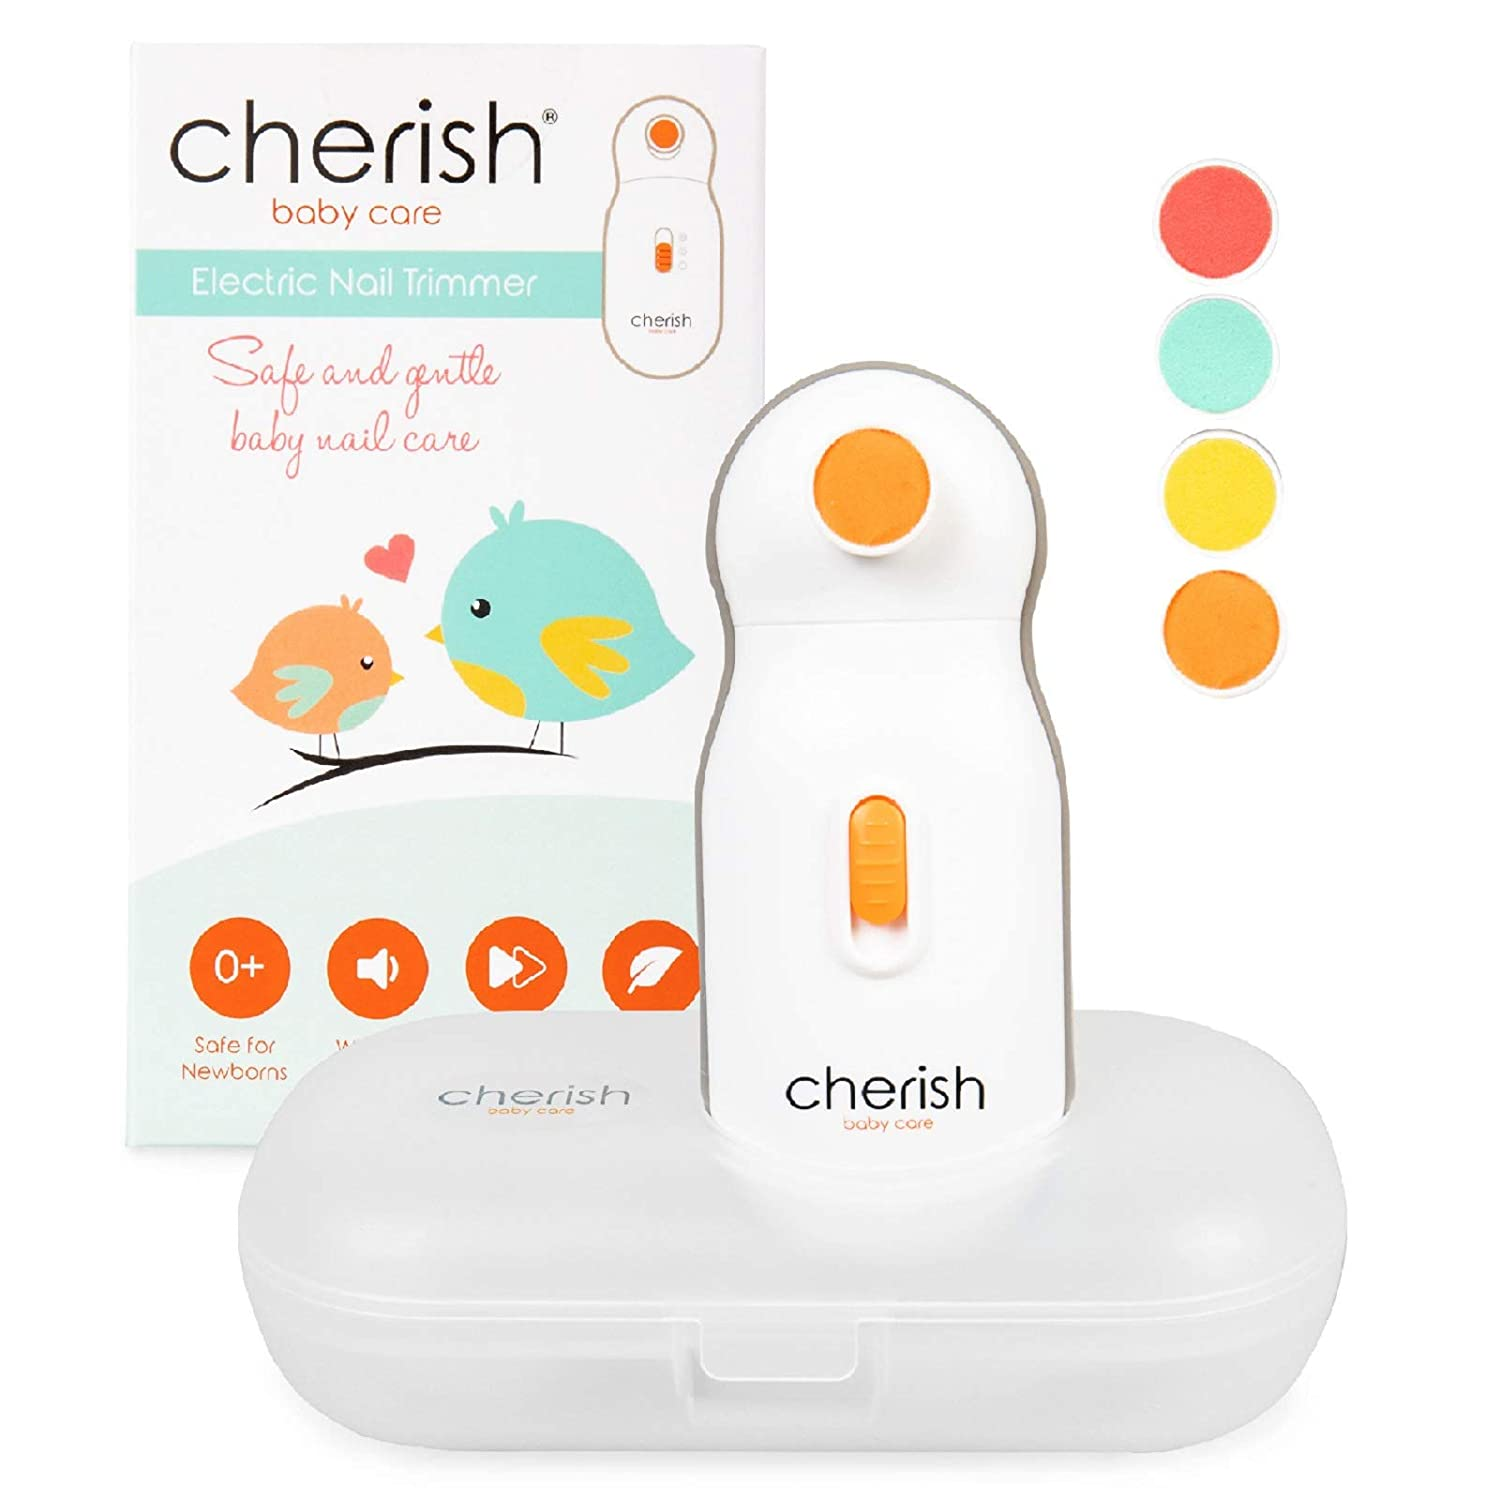 Replacement Filing Pads for Cherish Baby Care Electric Baby Nail Trimmer - Includes 4 Filing Discs for Newborn to Toddler